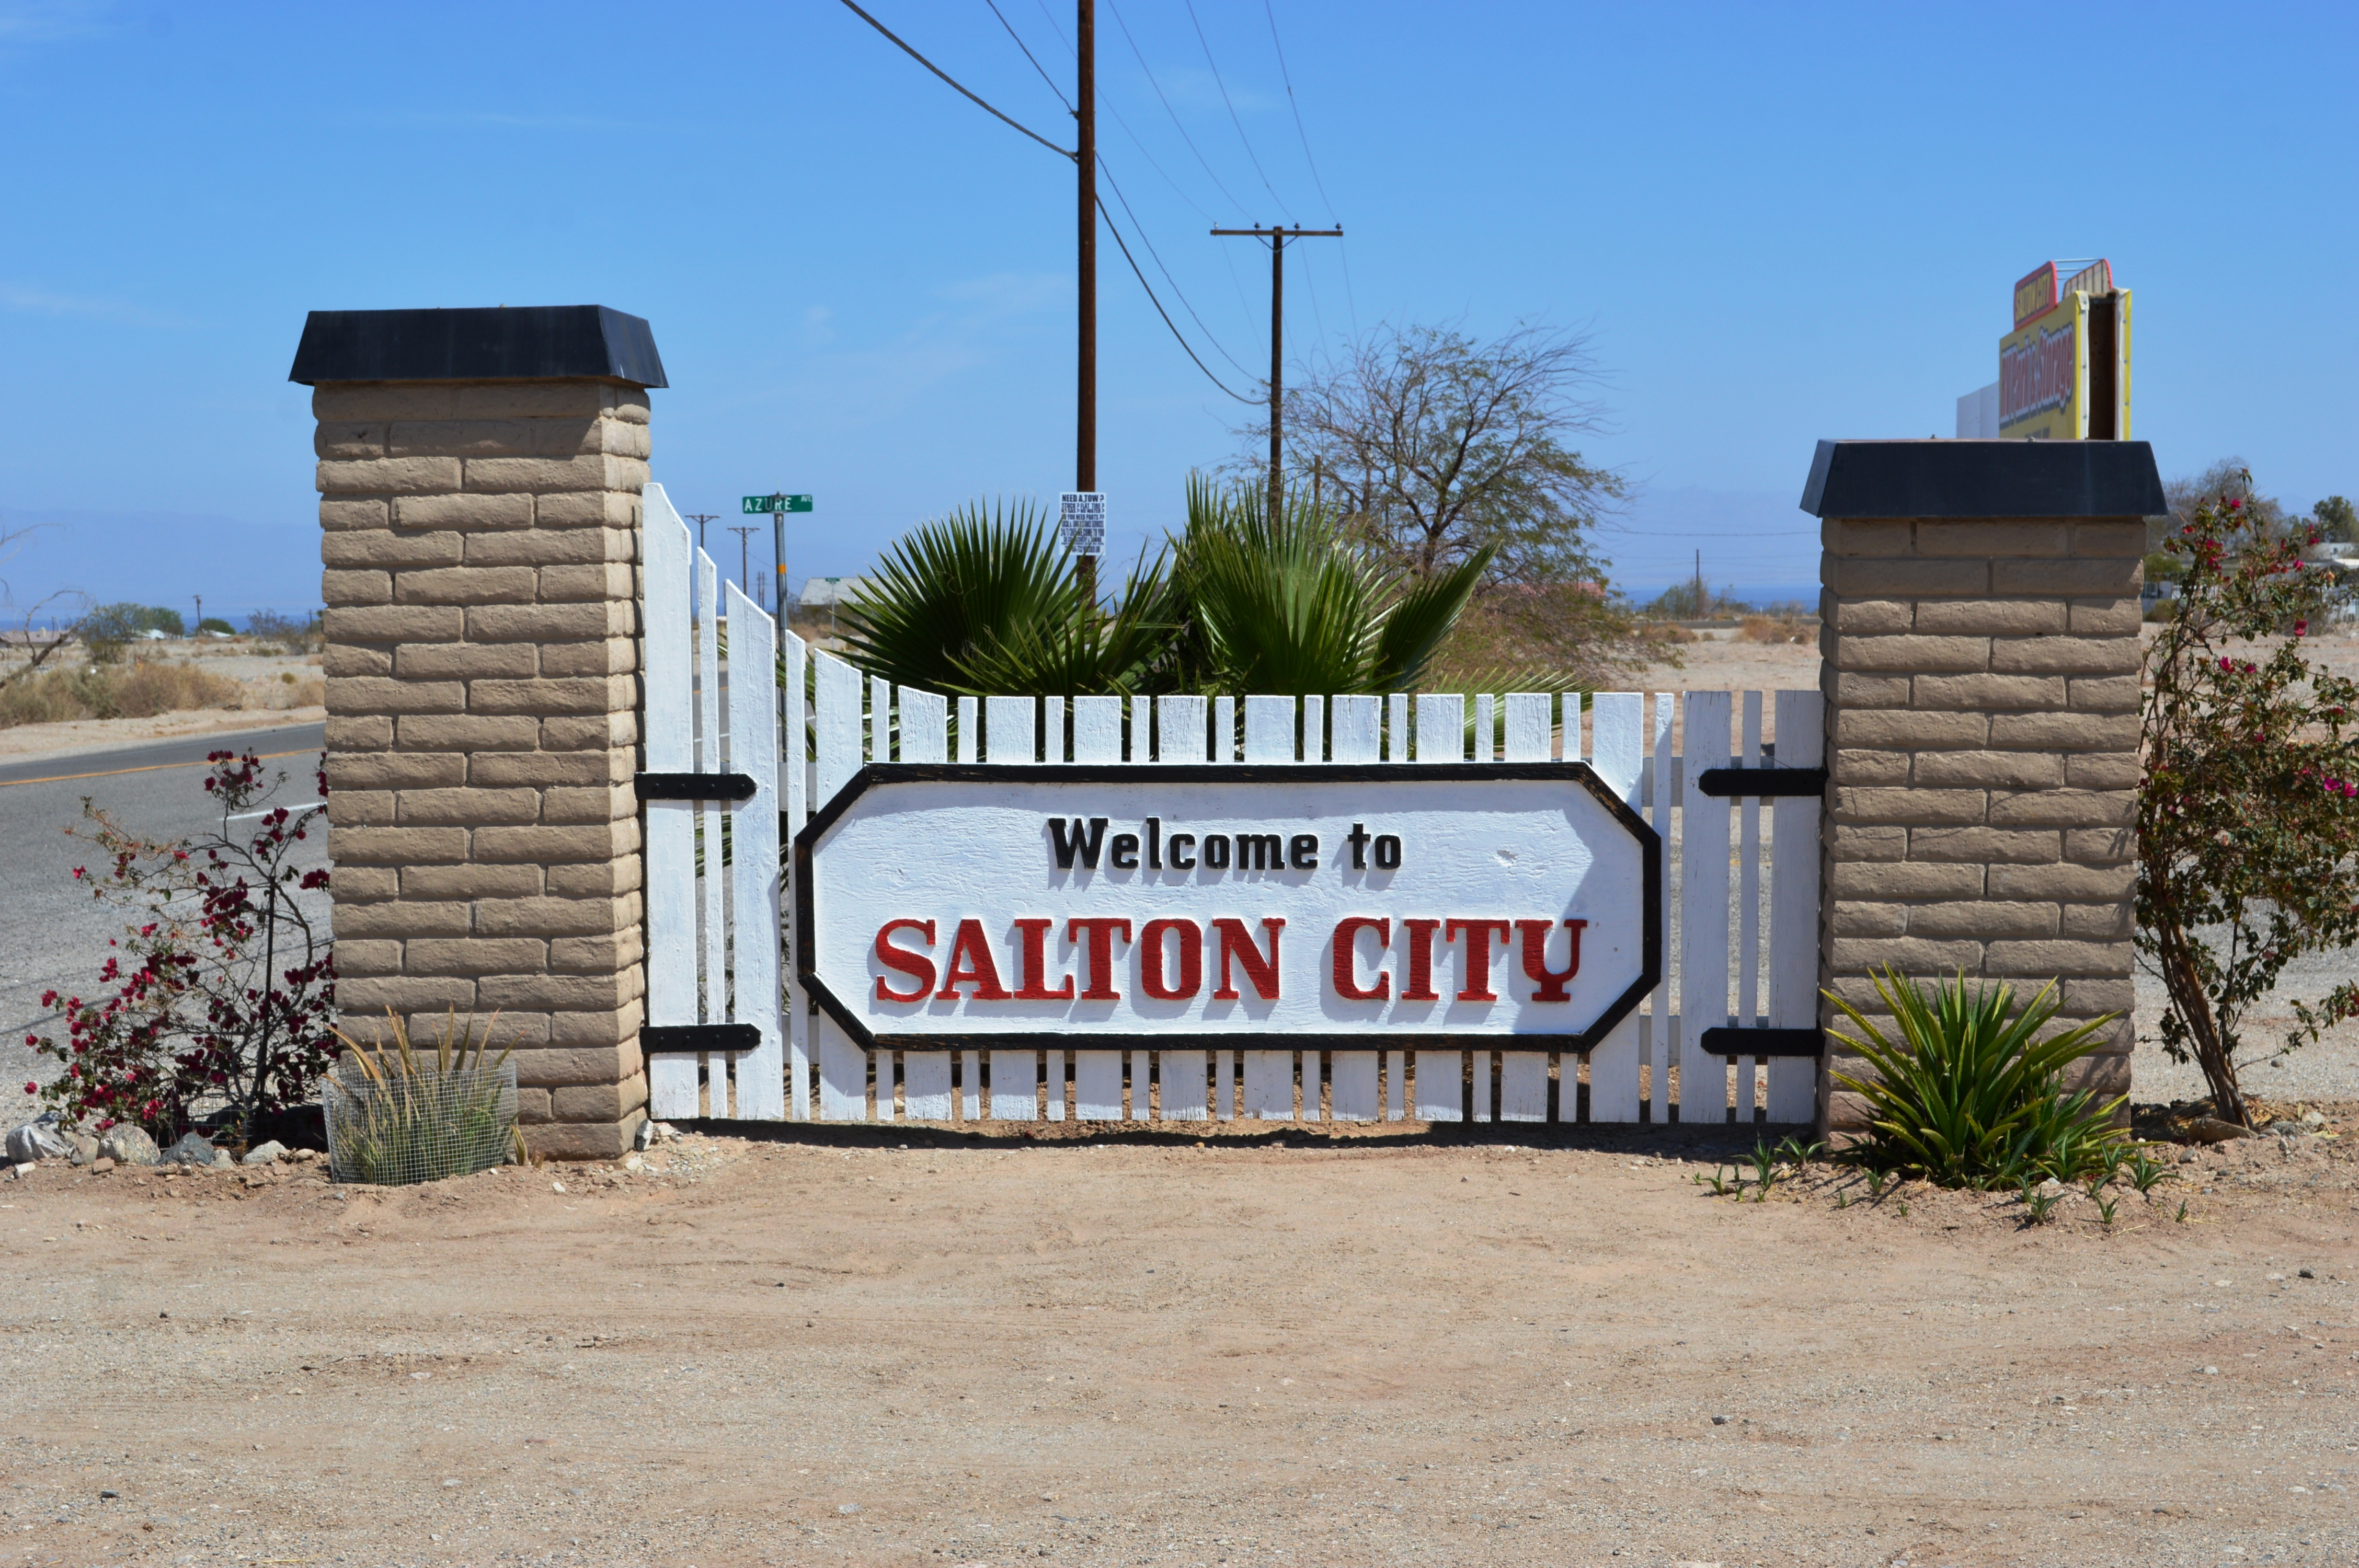 salton city chat West shores high school is a school located in salton city, california and is one of 23 schools in the coachella valley unified school district there are 380 students from 7th grade to 12th grade and a student/teacher ratio of 15:1.